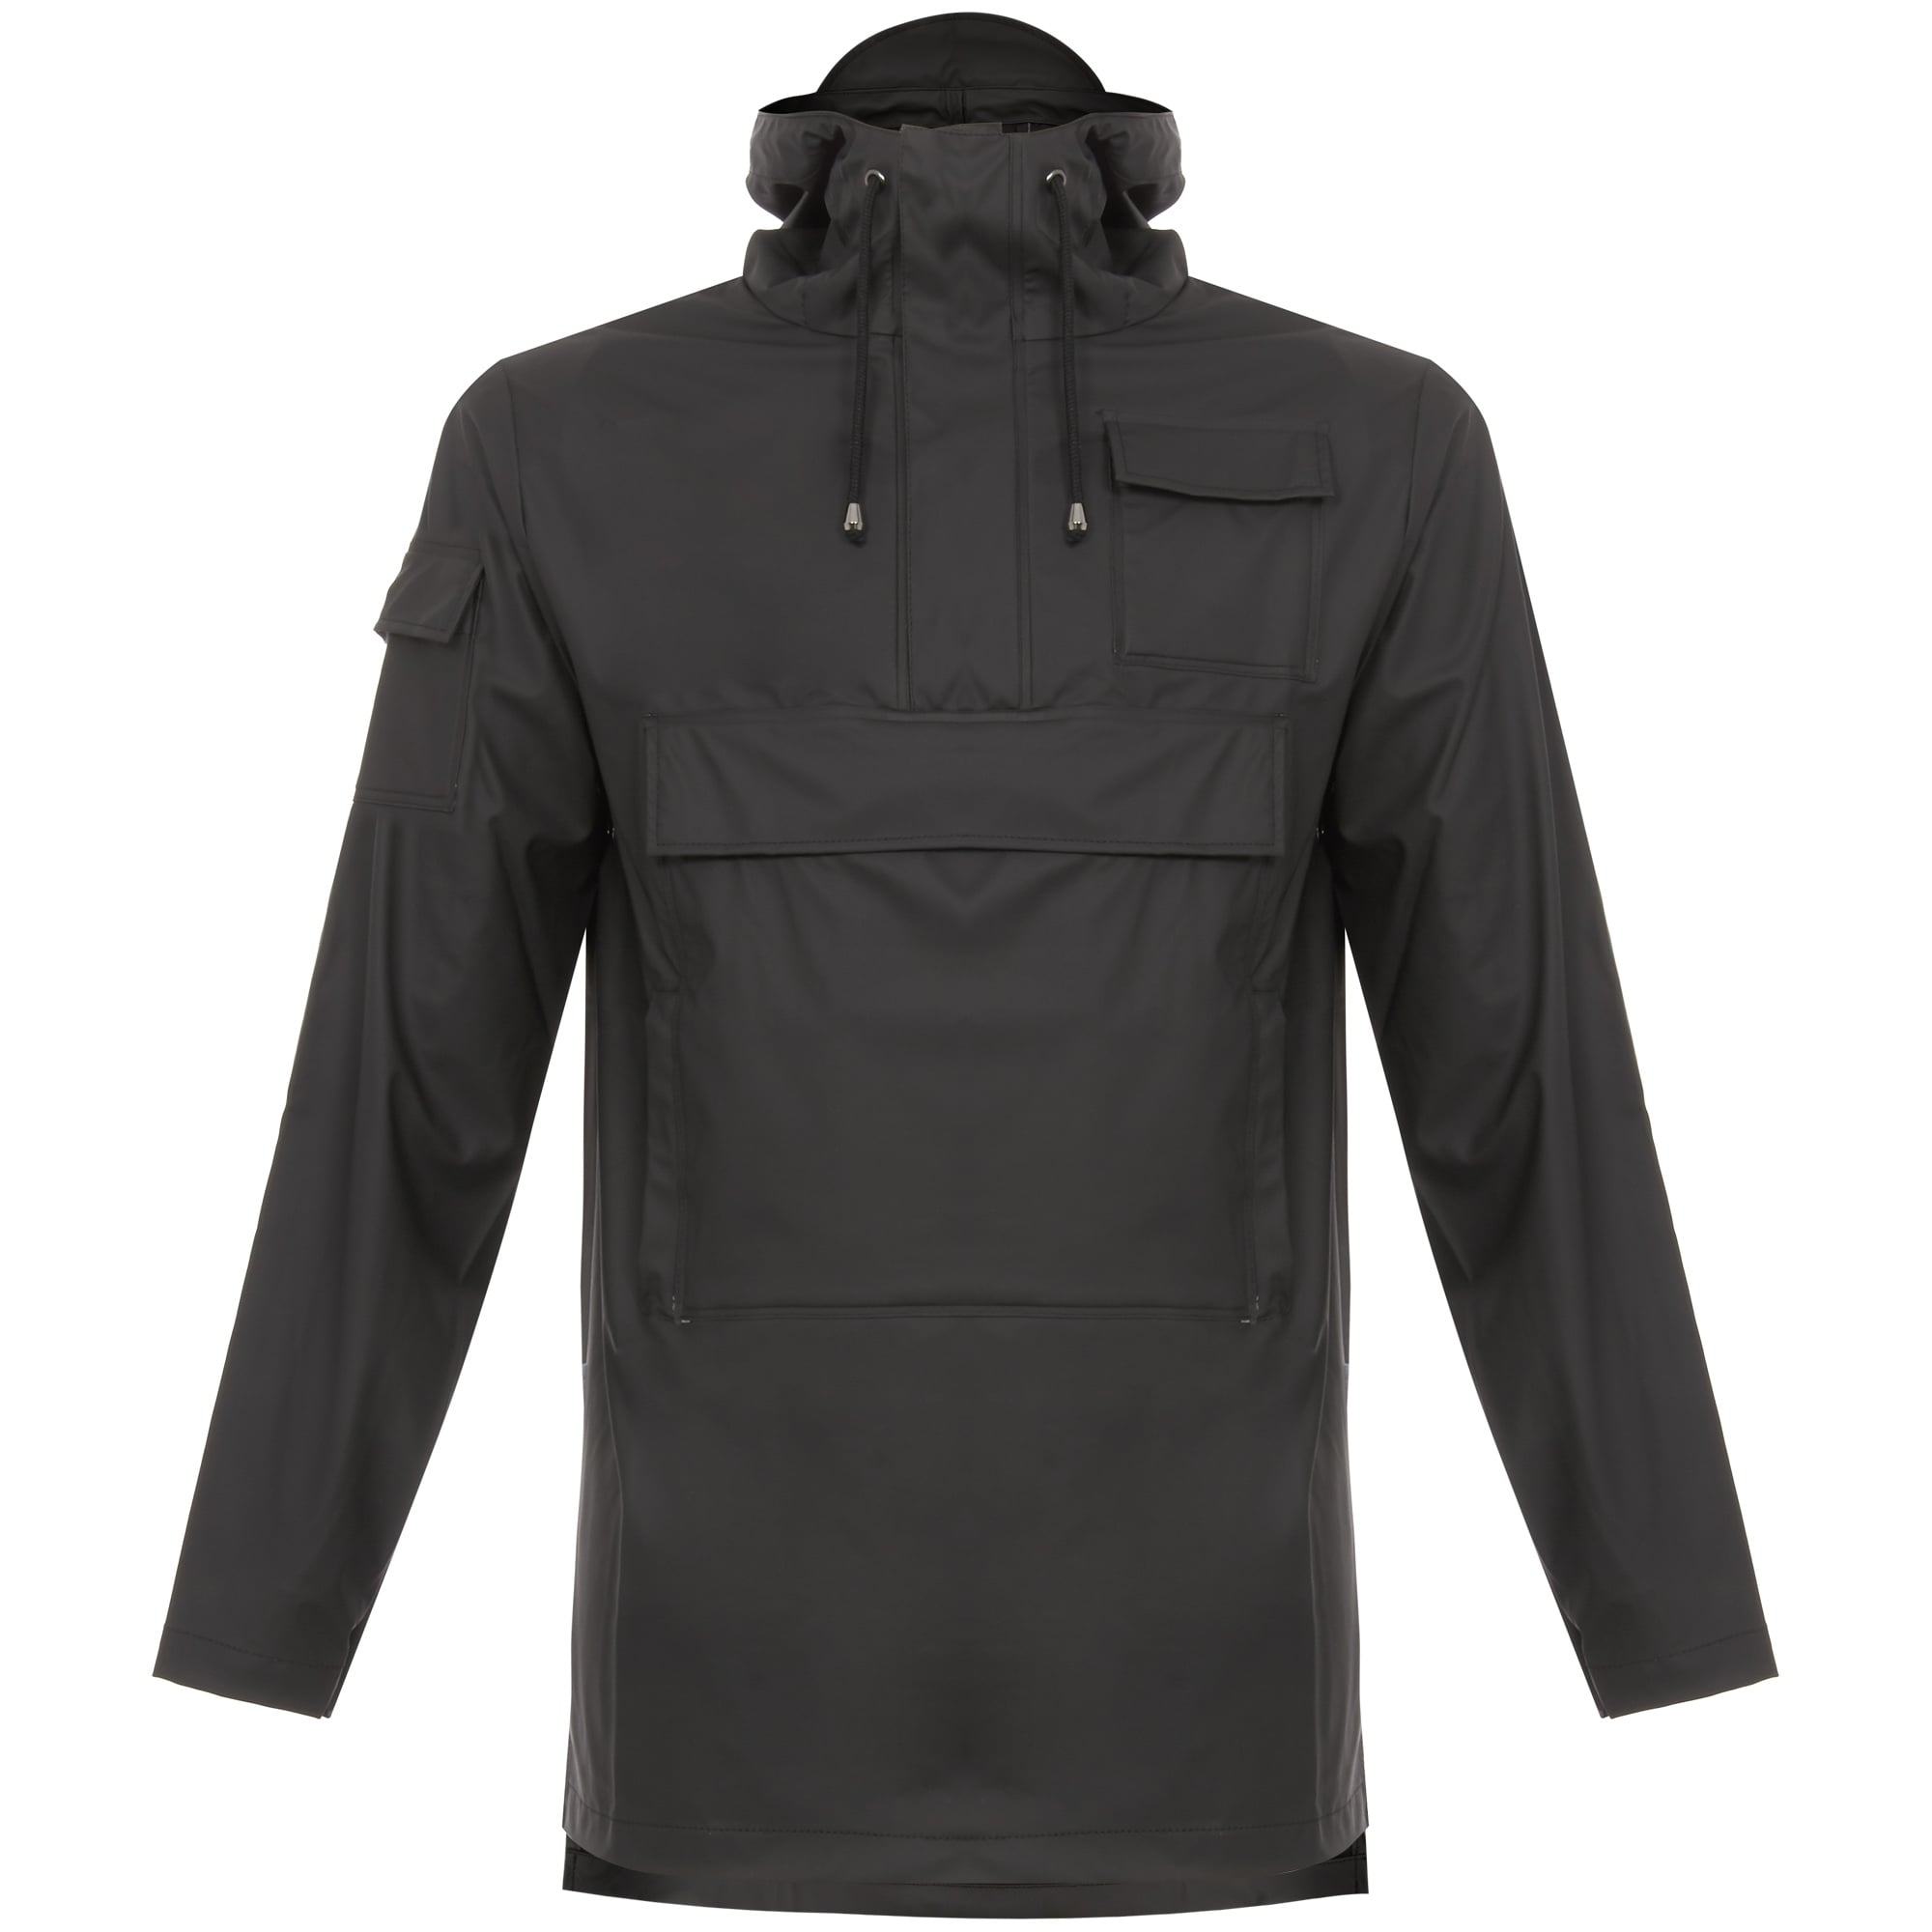 785d4d456 Rains Camp Anorak Black -1242-01